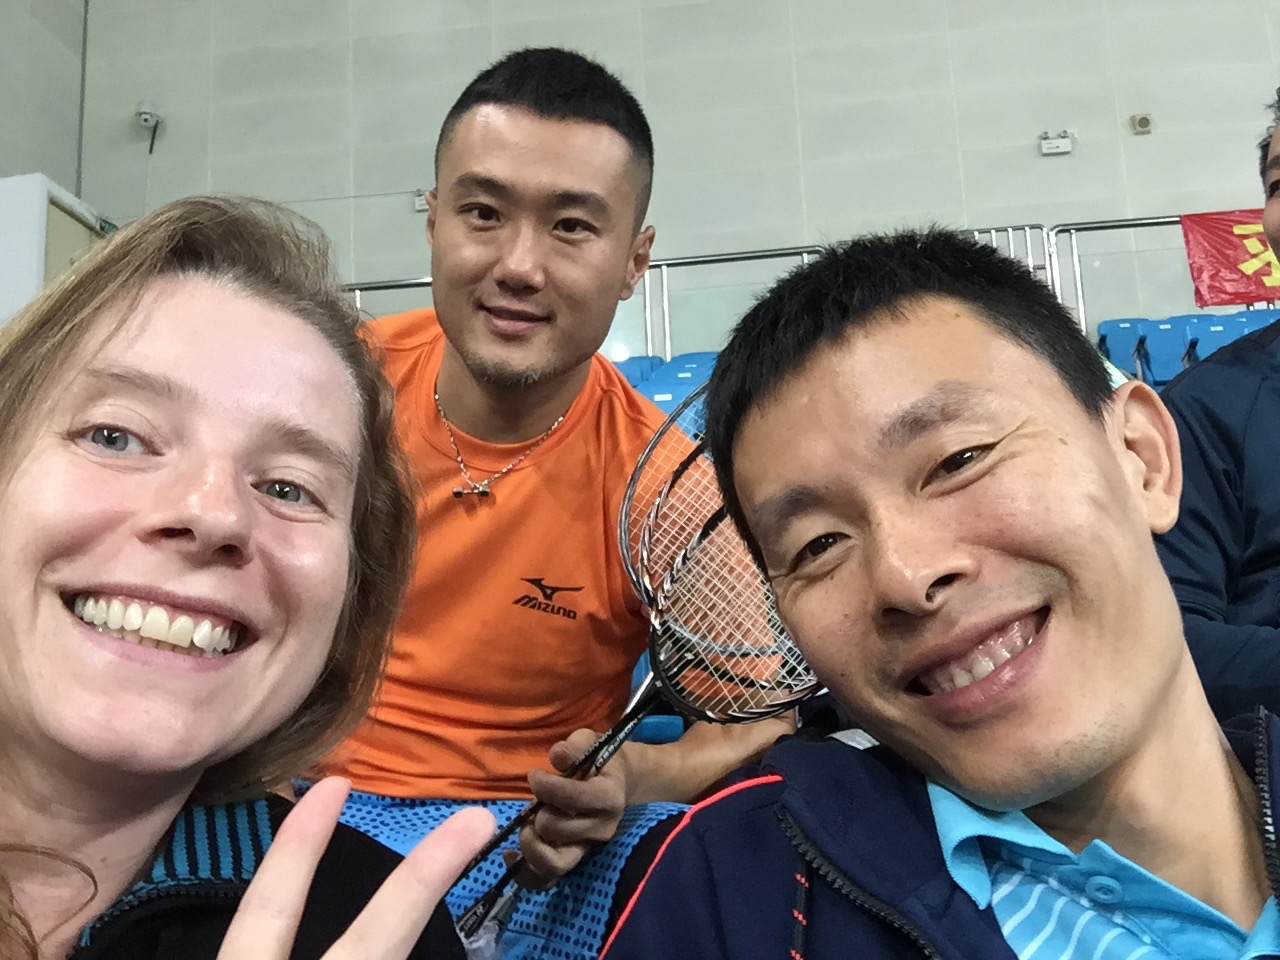 Me, my coach and my friend Yang Ping behind us. Yang Ping is my part-time coach and we train together every Wednesday.